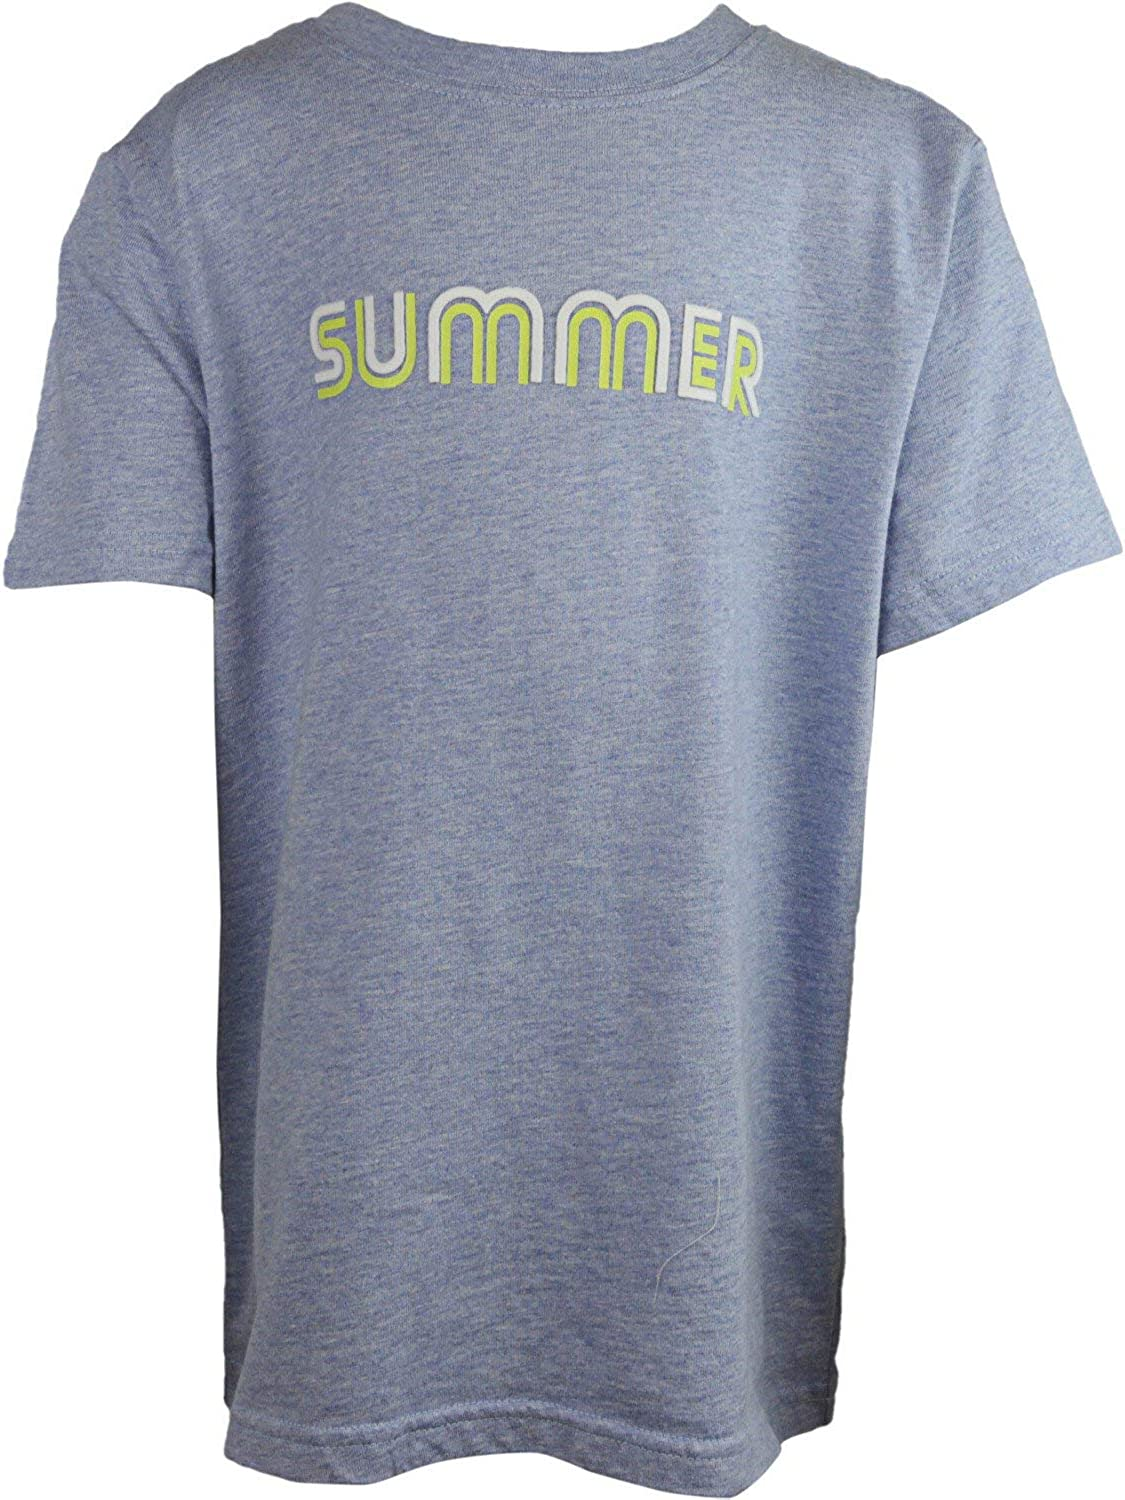 Janie and Jack Neon Summer Tee - 5 - Blue